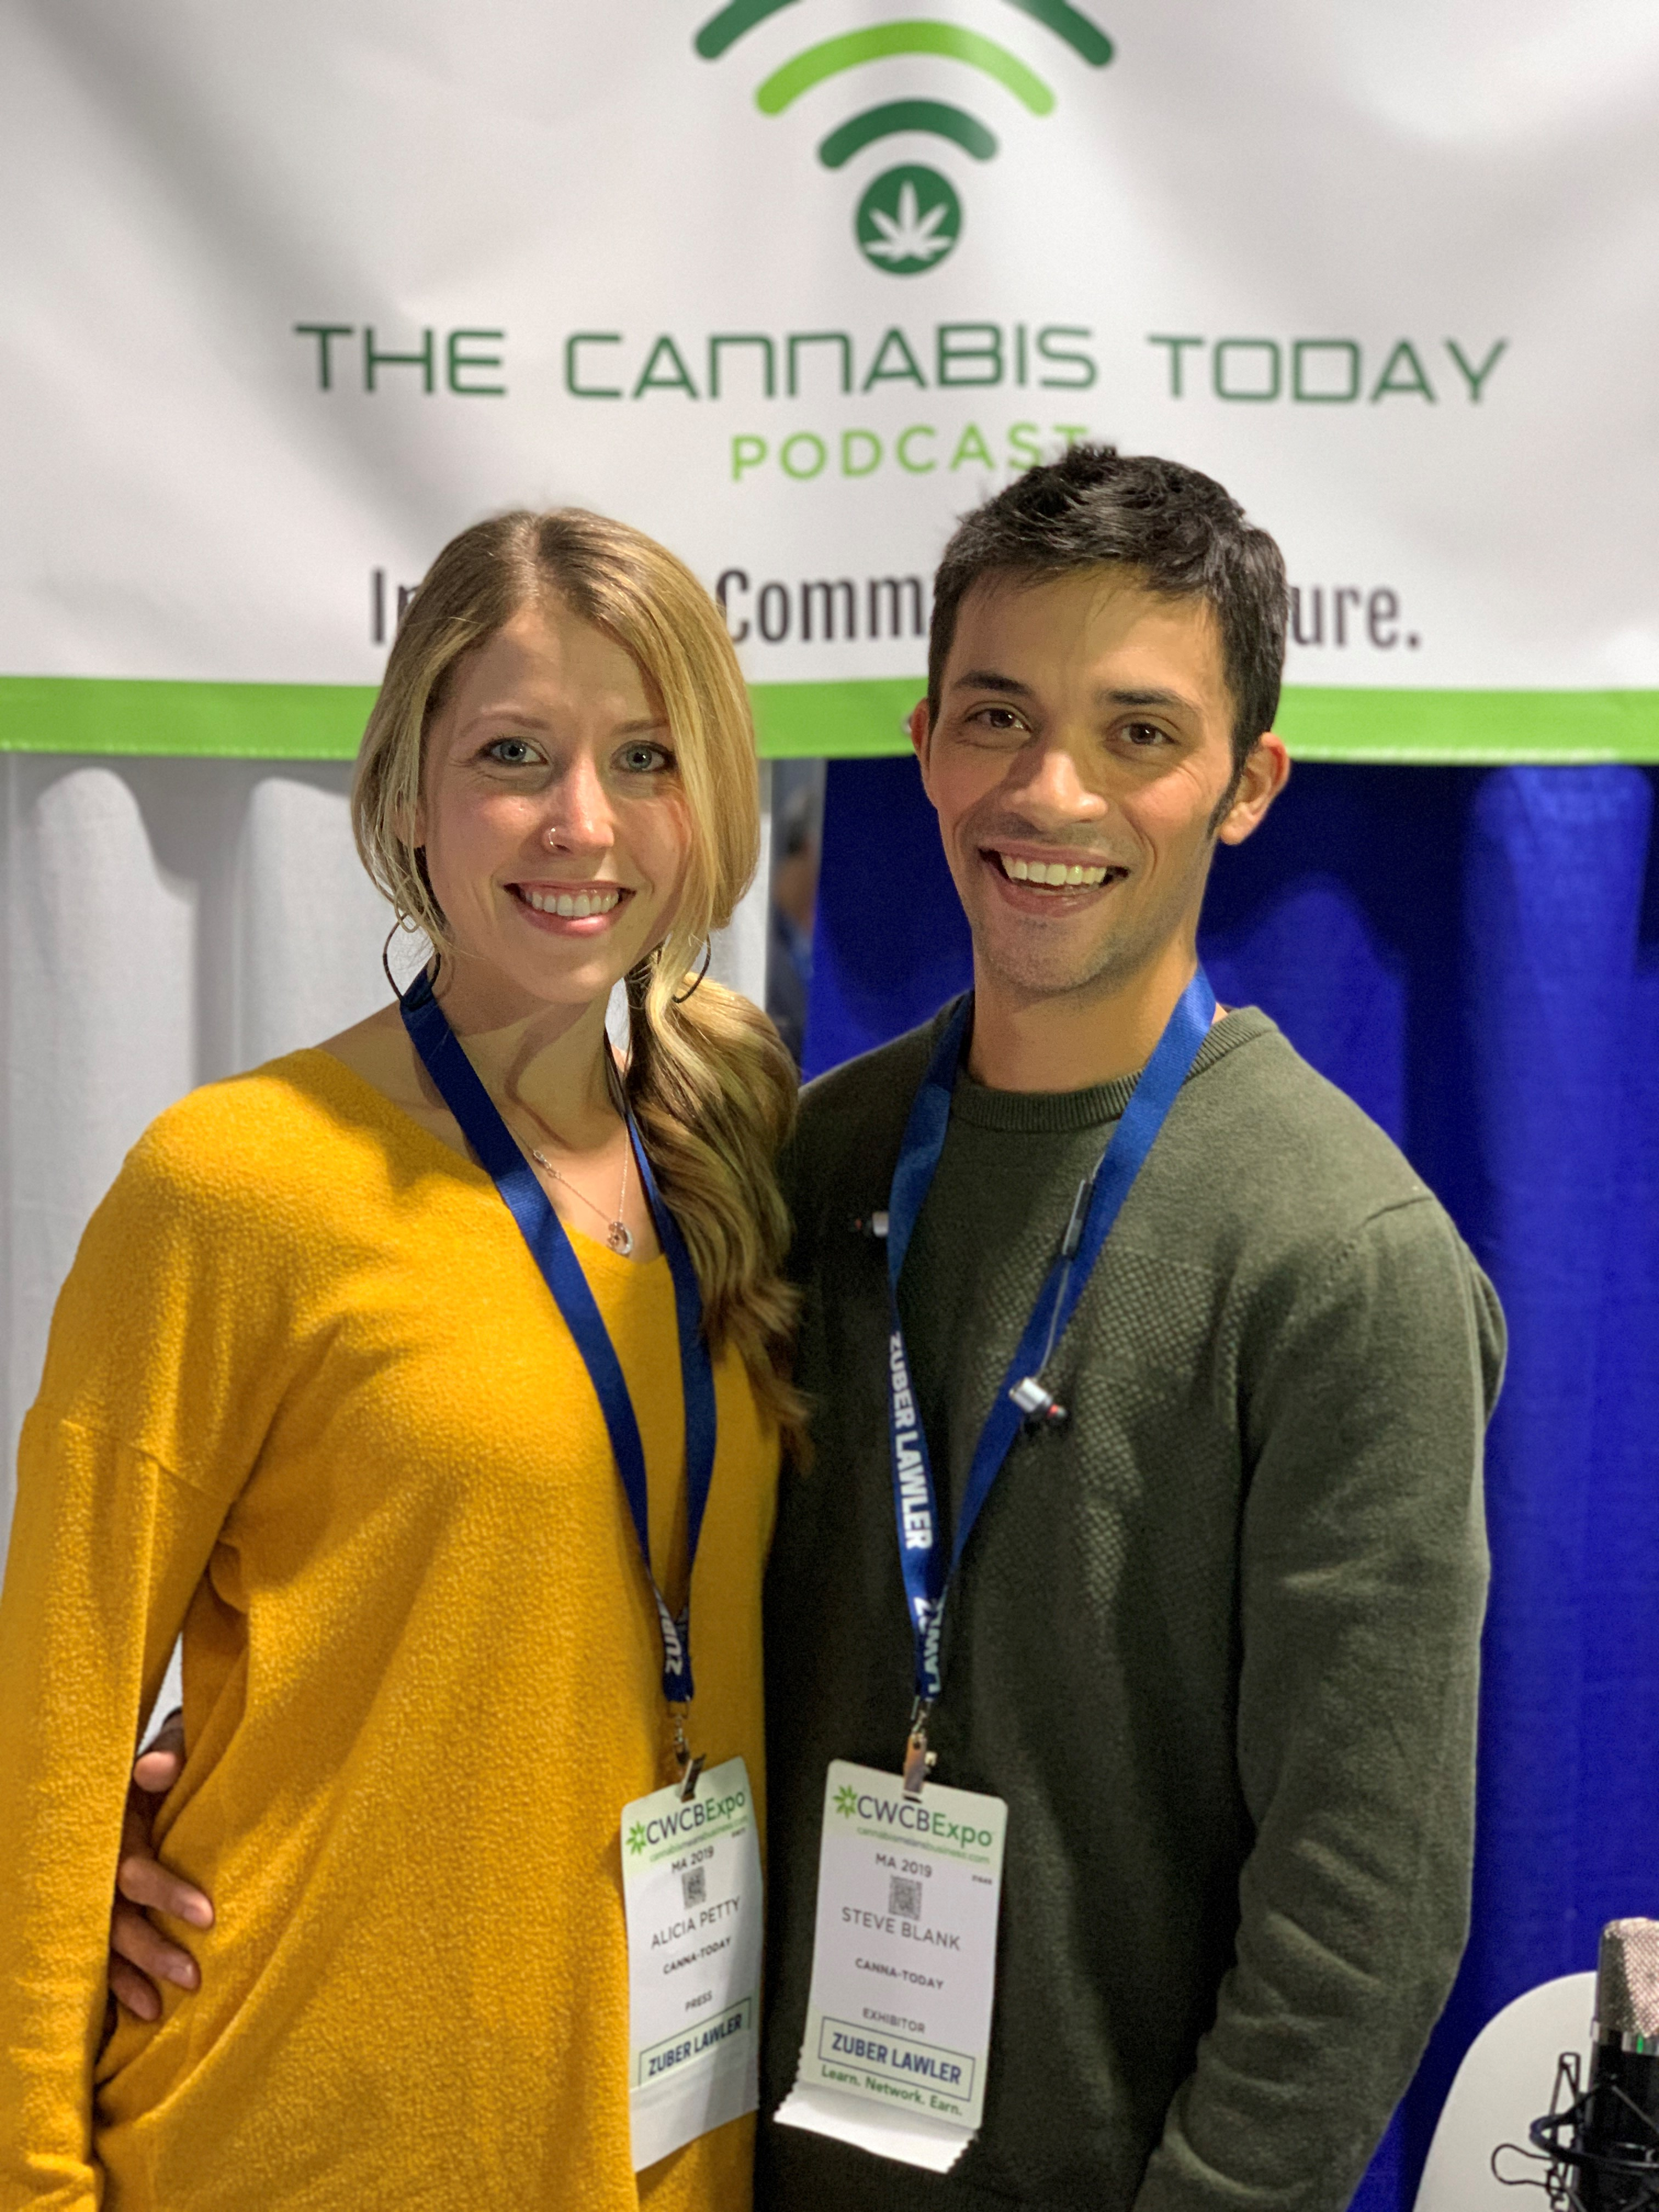 The Cannabis Today Podcast